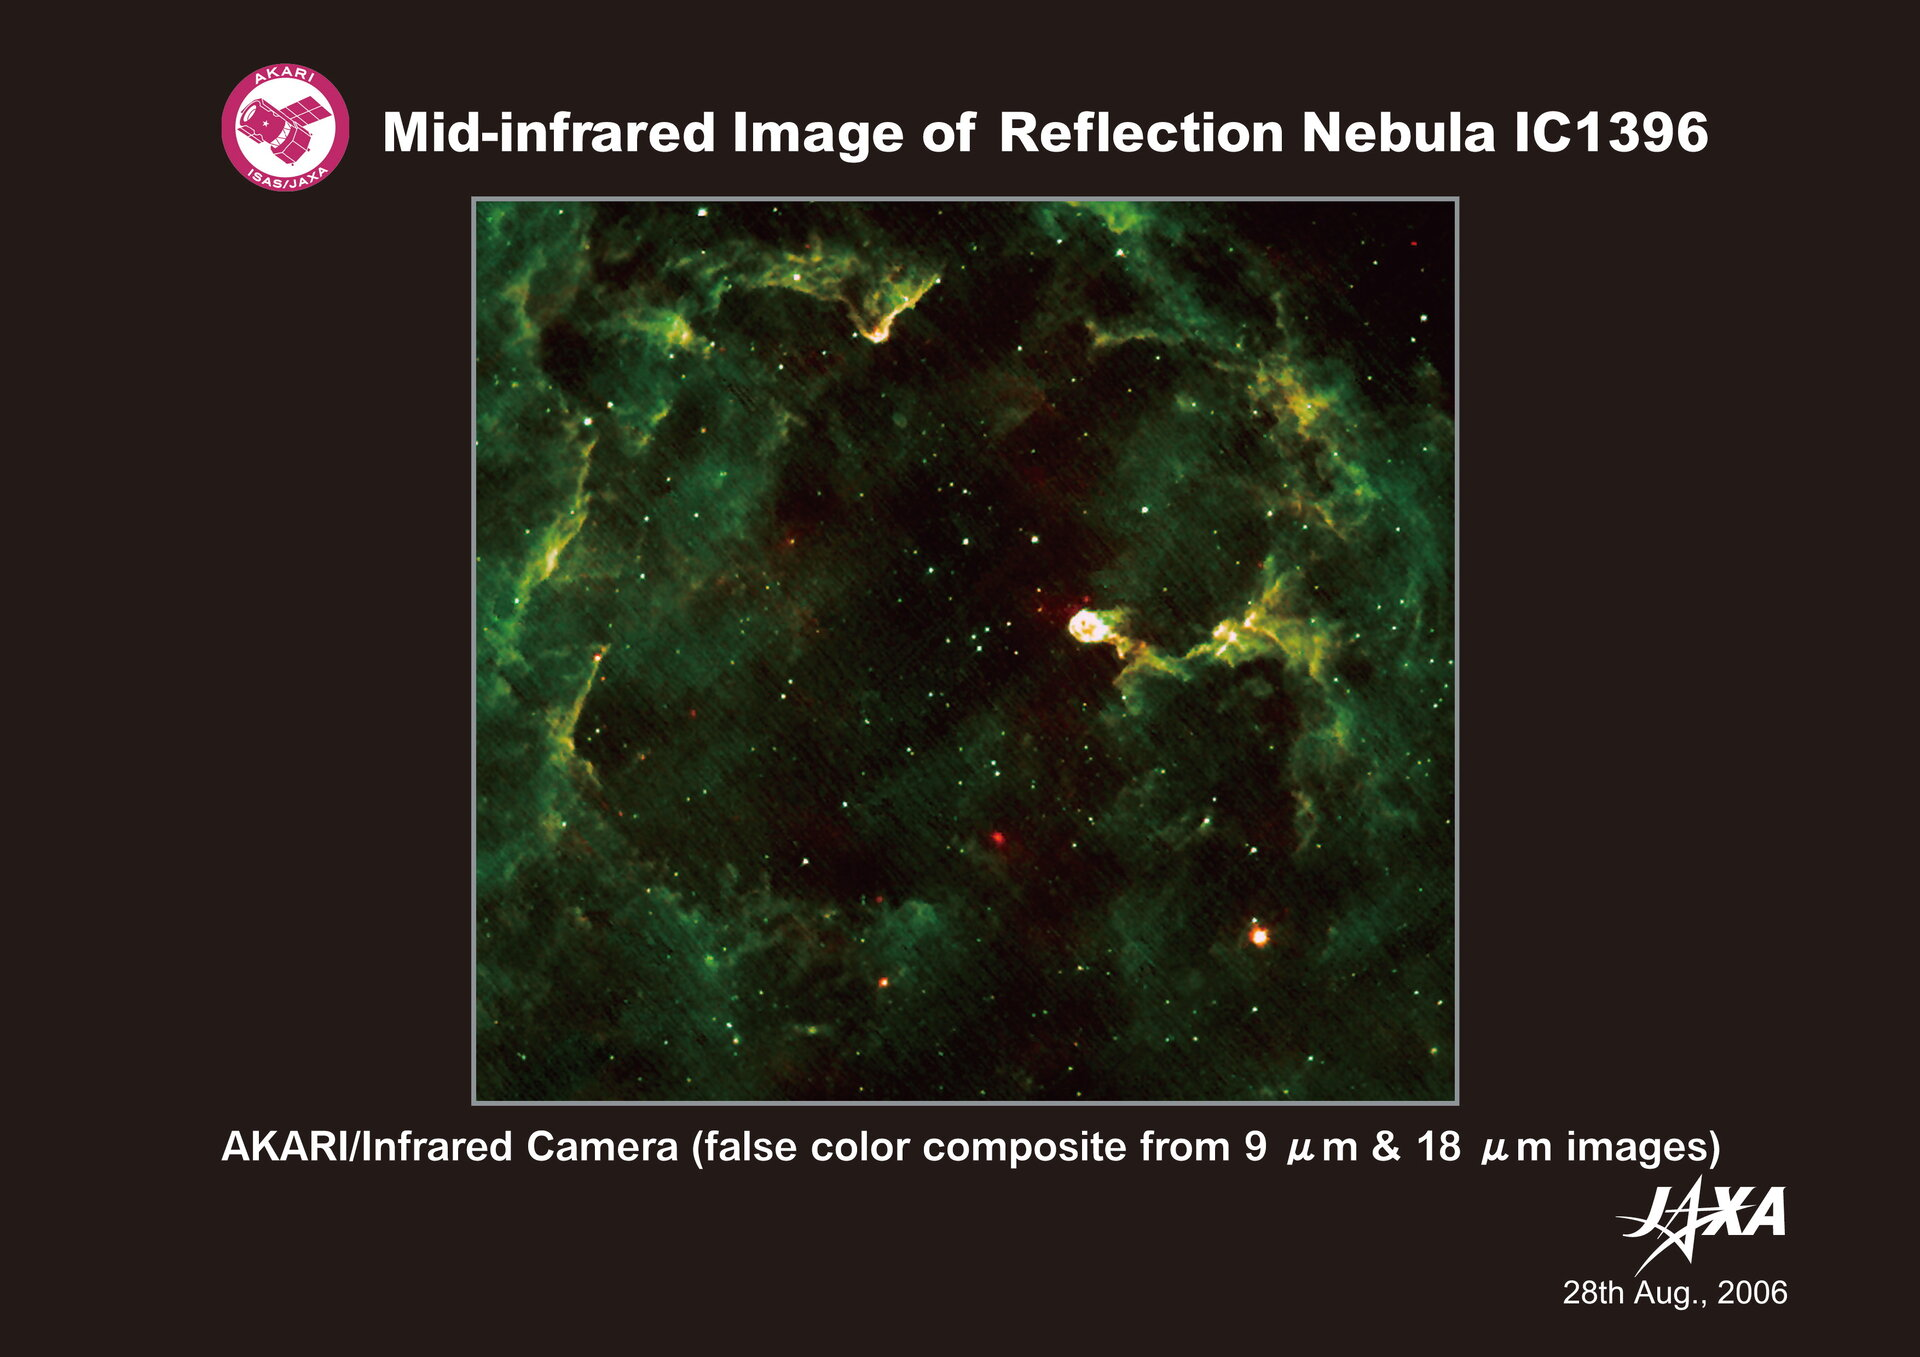 AKARI's mid-infrared image of reflection nebula IC 1396